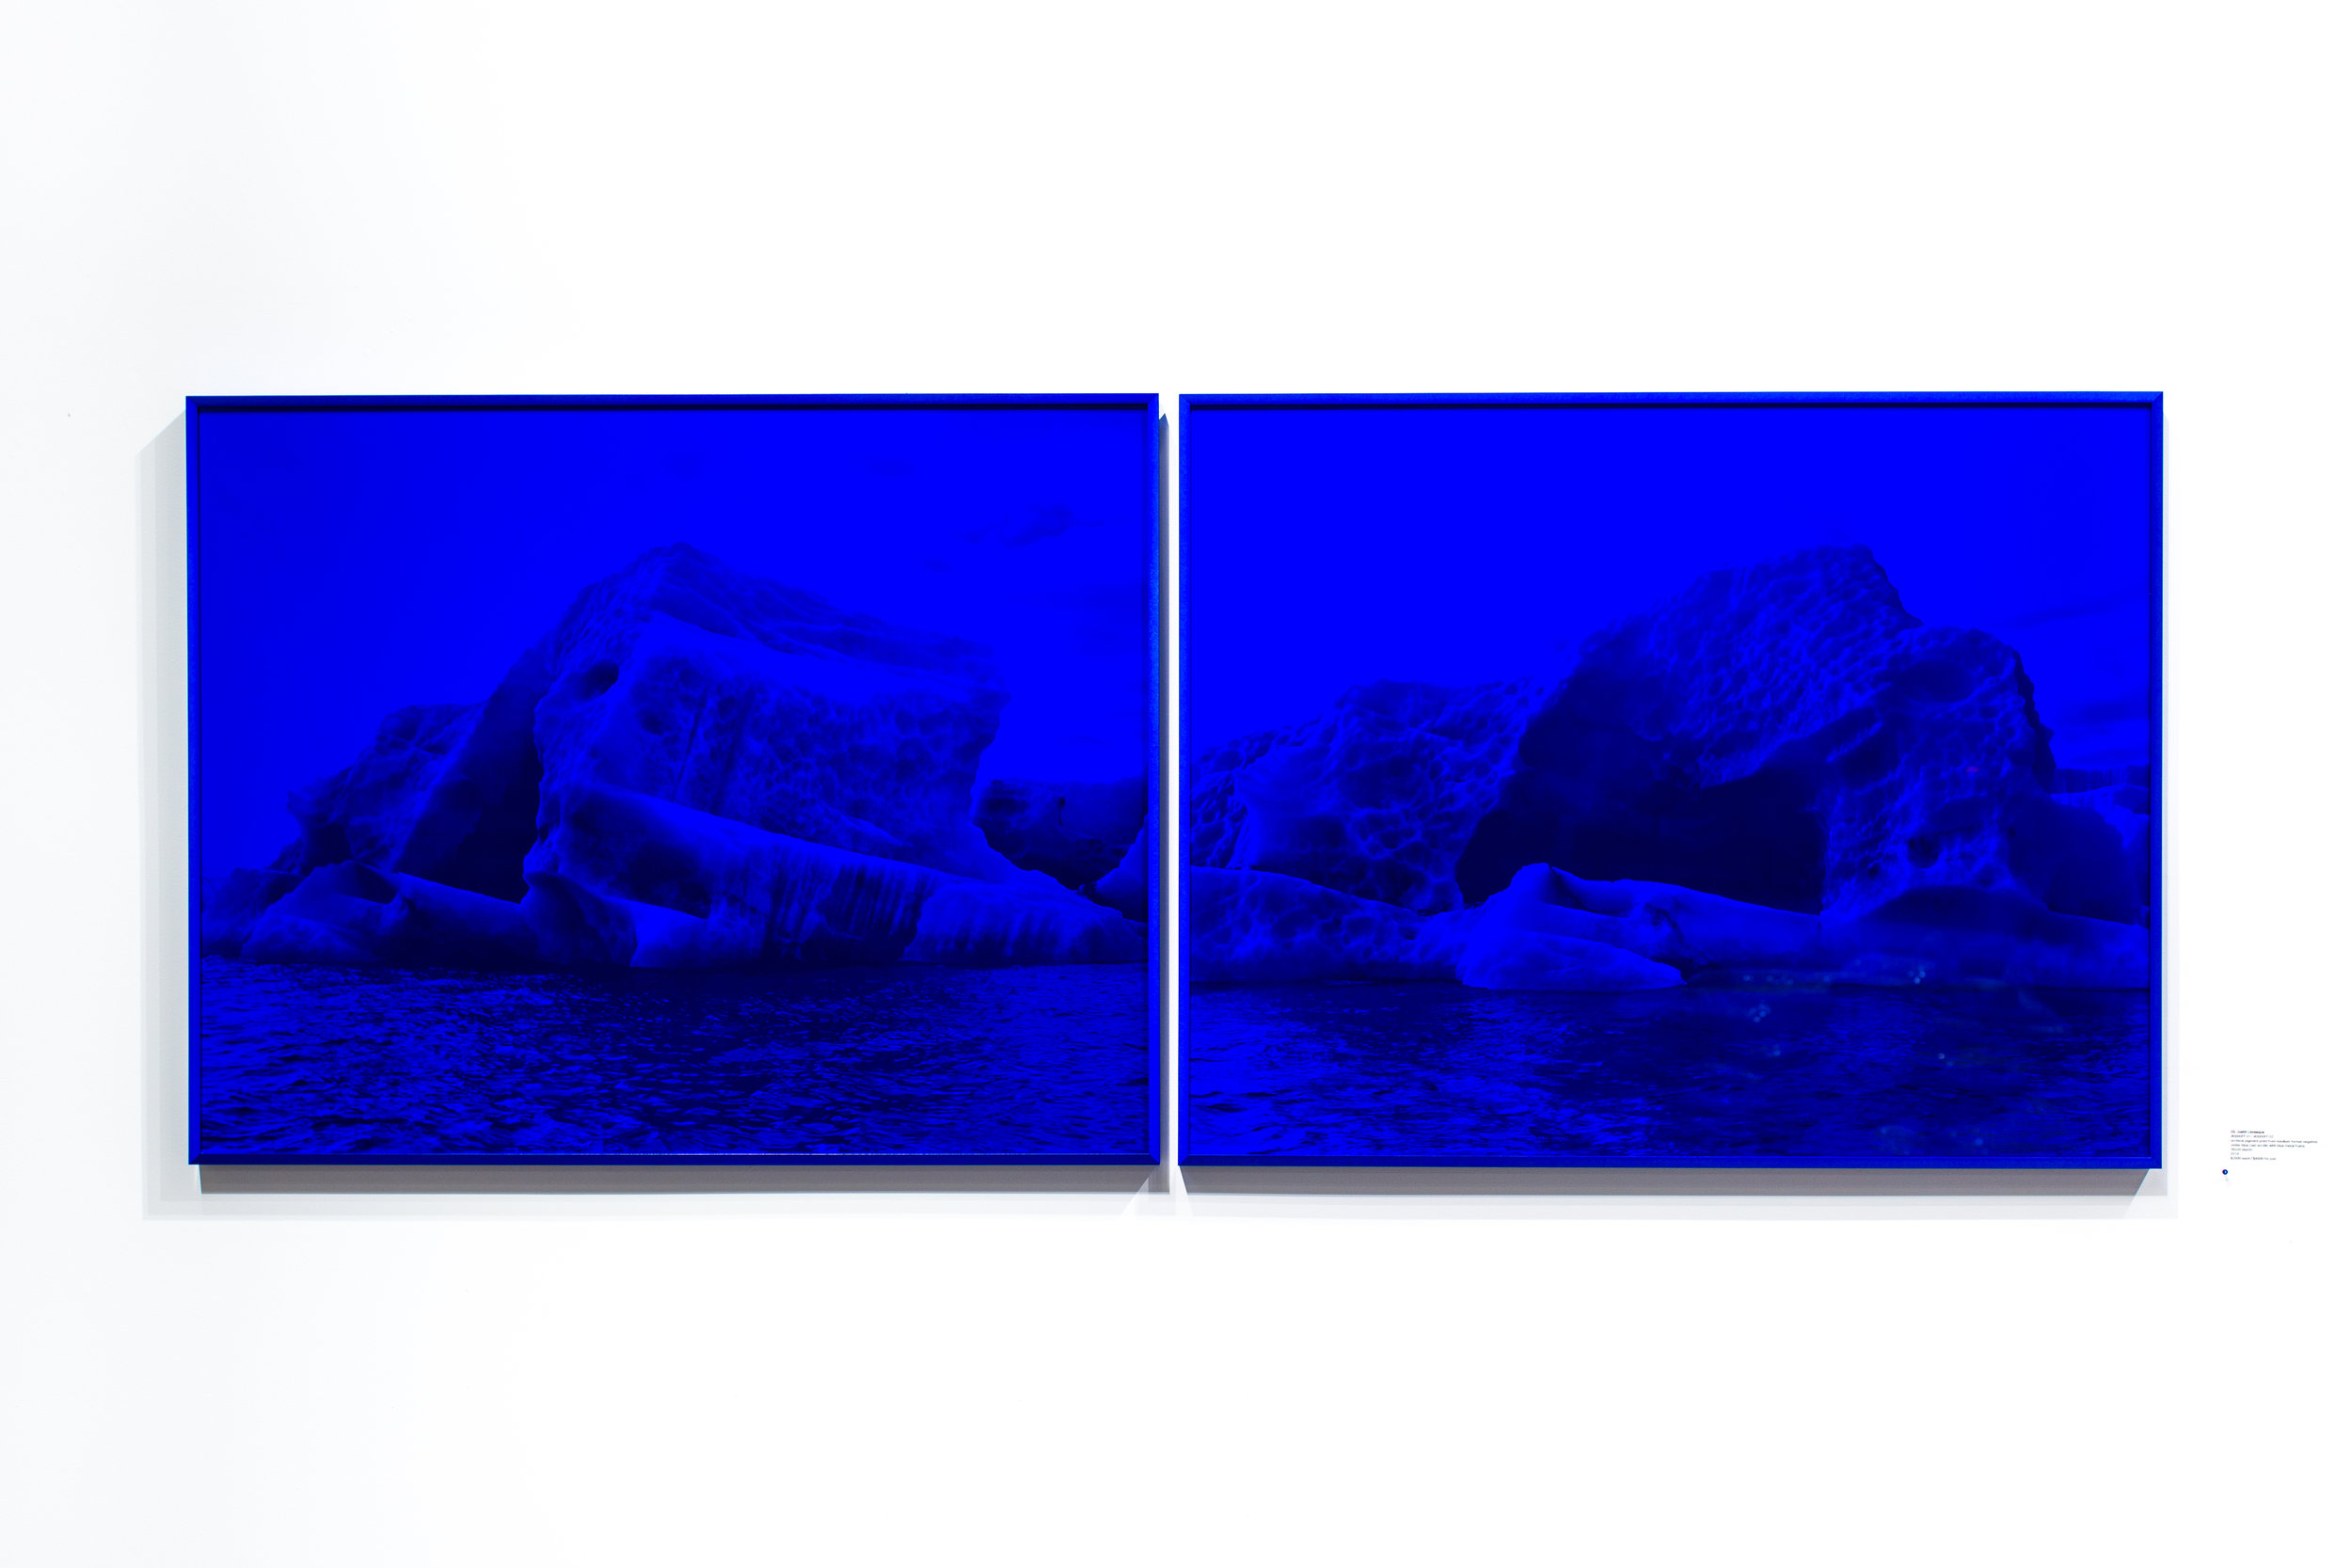 Justin Levesque, #0000FF 01 / #0000FF 02, archival pigment print from medium format negative under blue cast acrylic with blue metal frame, 38x30 (each), 2018